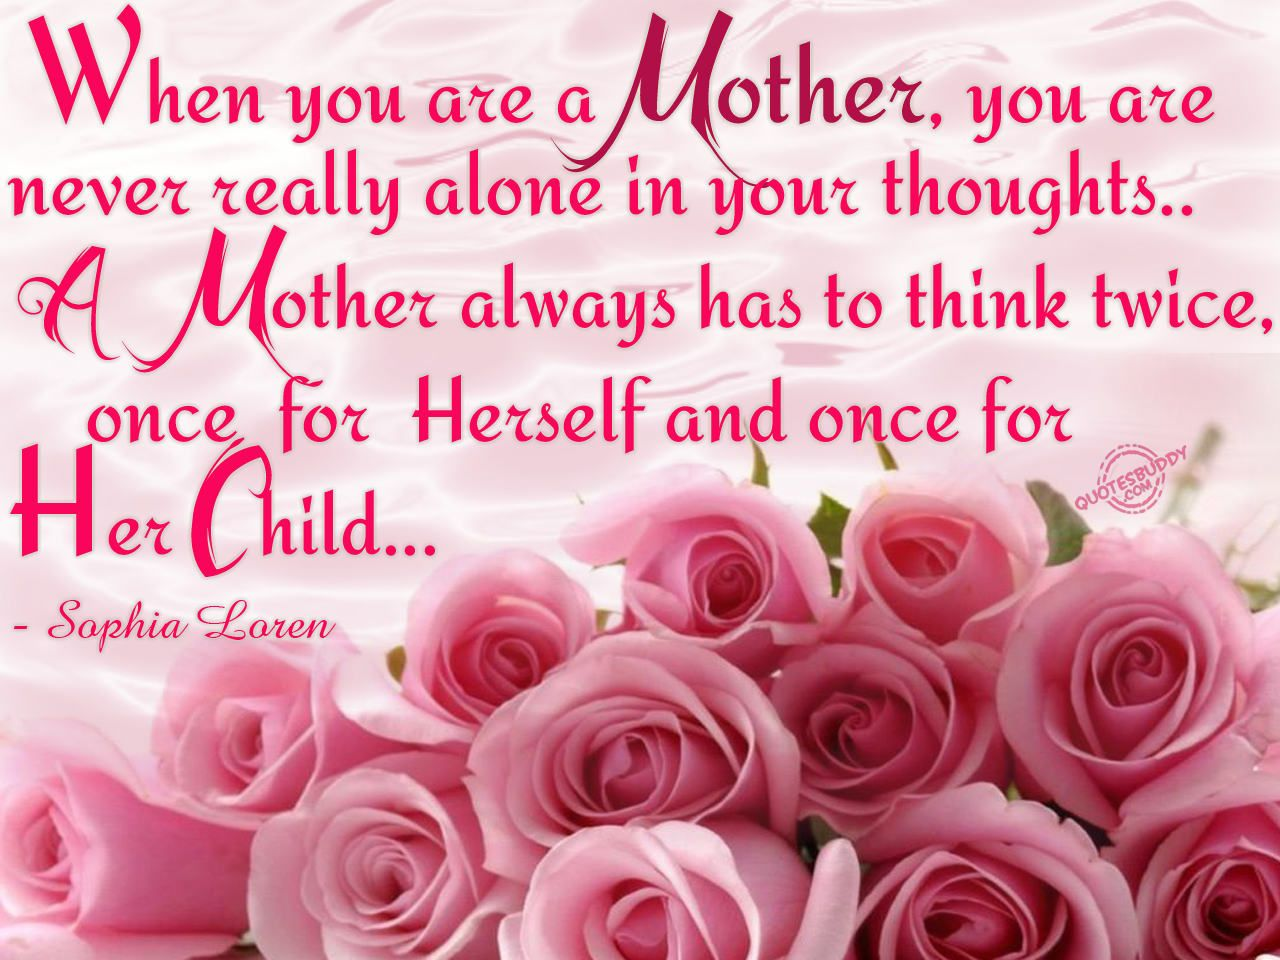 2017 Happy Mothers Day Quotes and Sayings Text Messages God could not be everywhere and therefore he made mothers Happy Mother s Day 2017 to all Moms